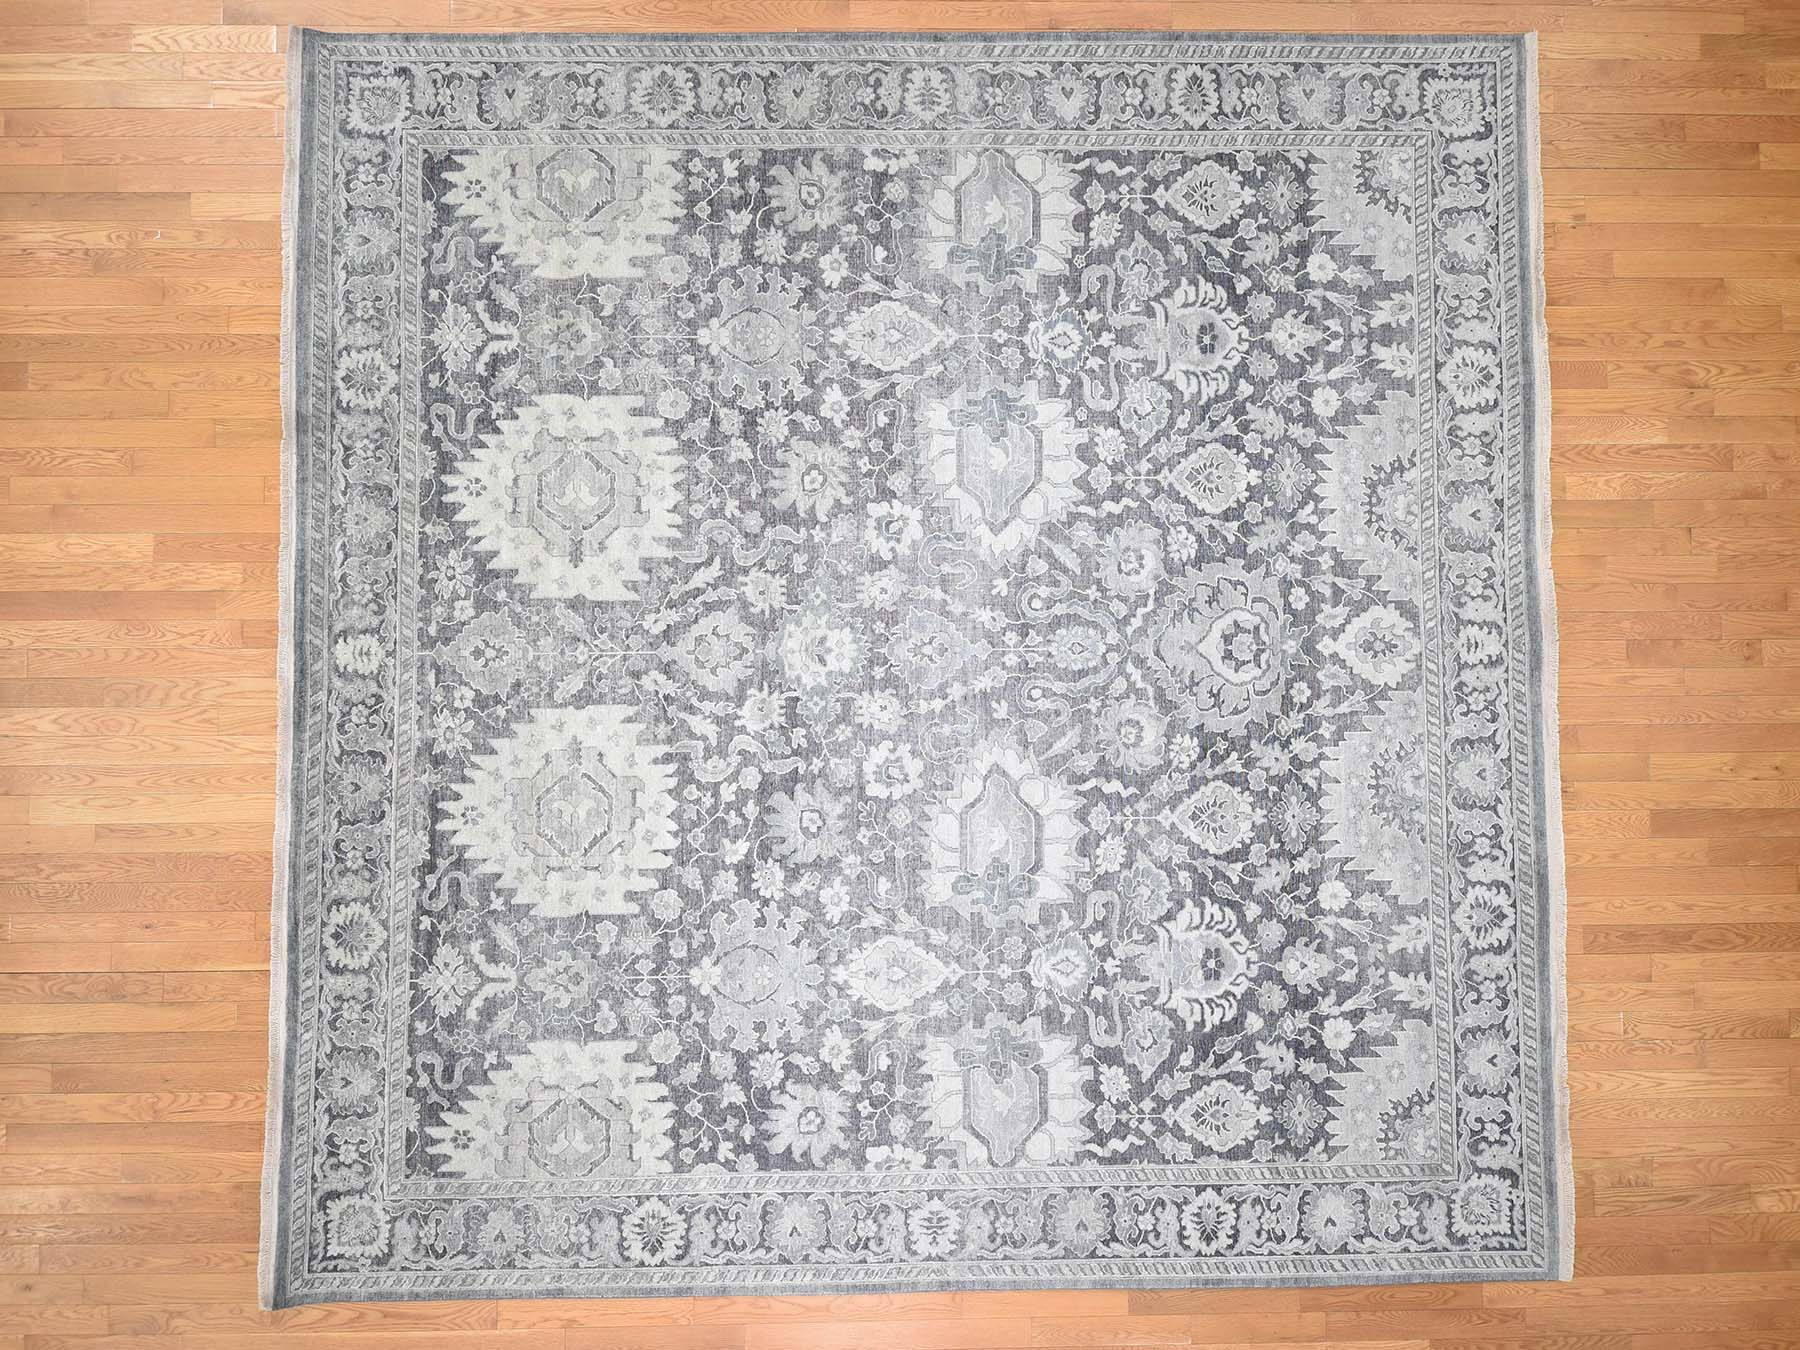 Transitional Silk Hand-Knotted Area Rug 11'10